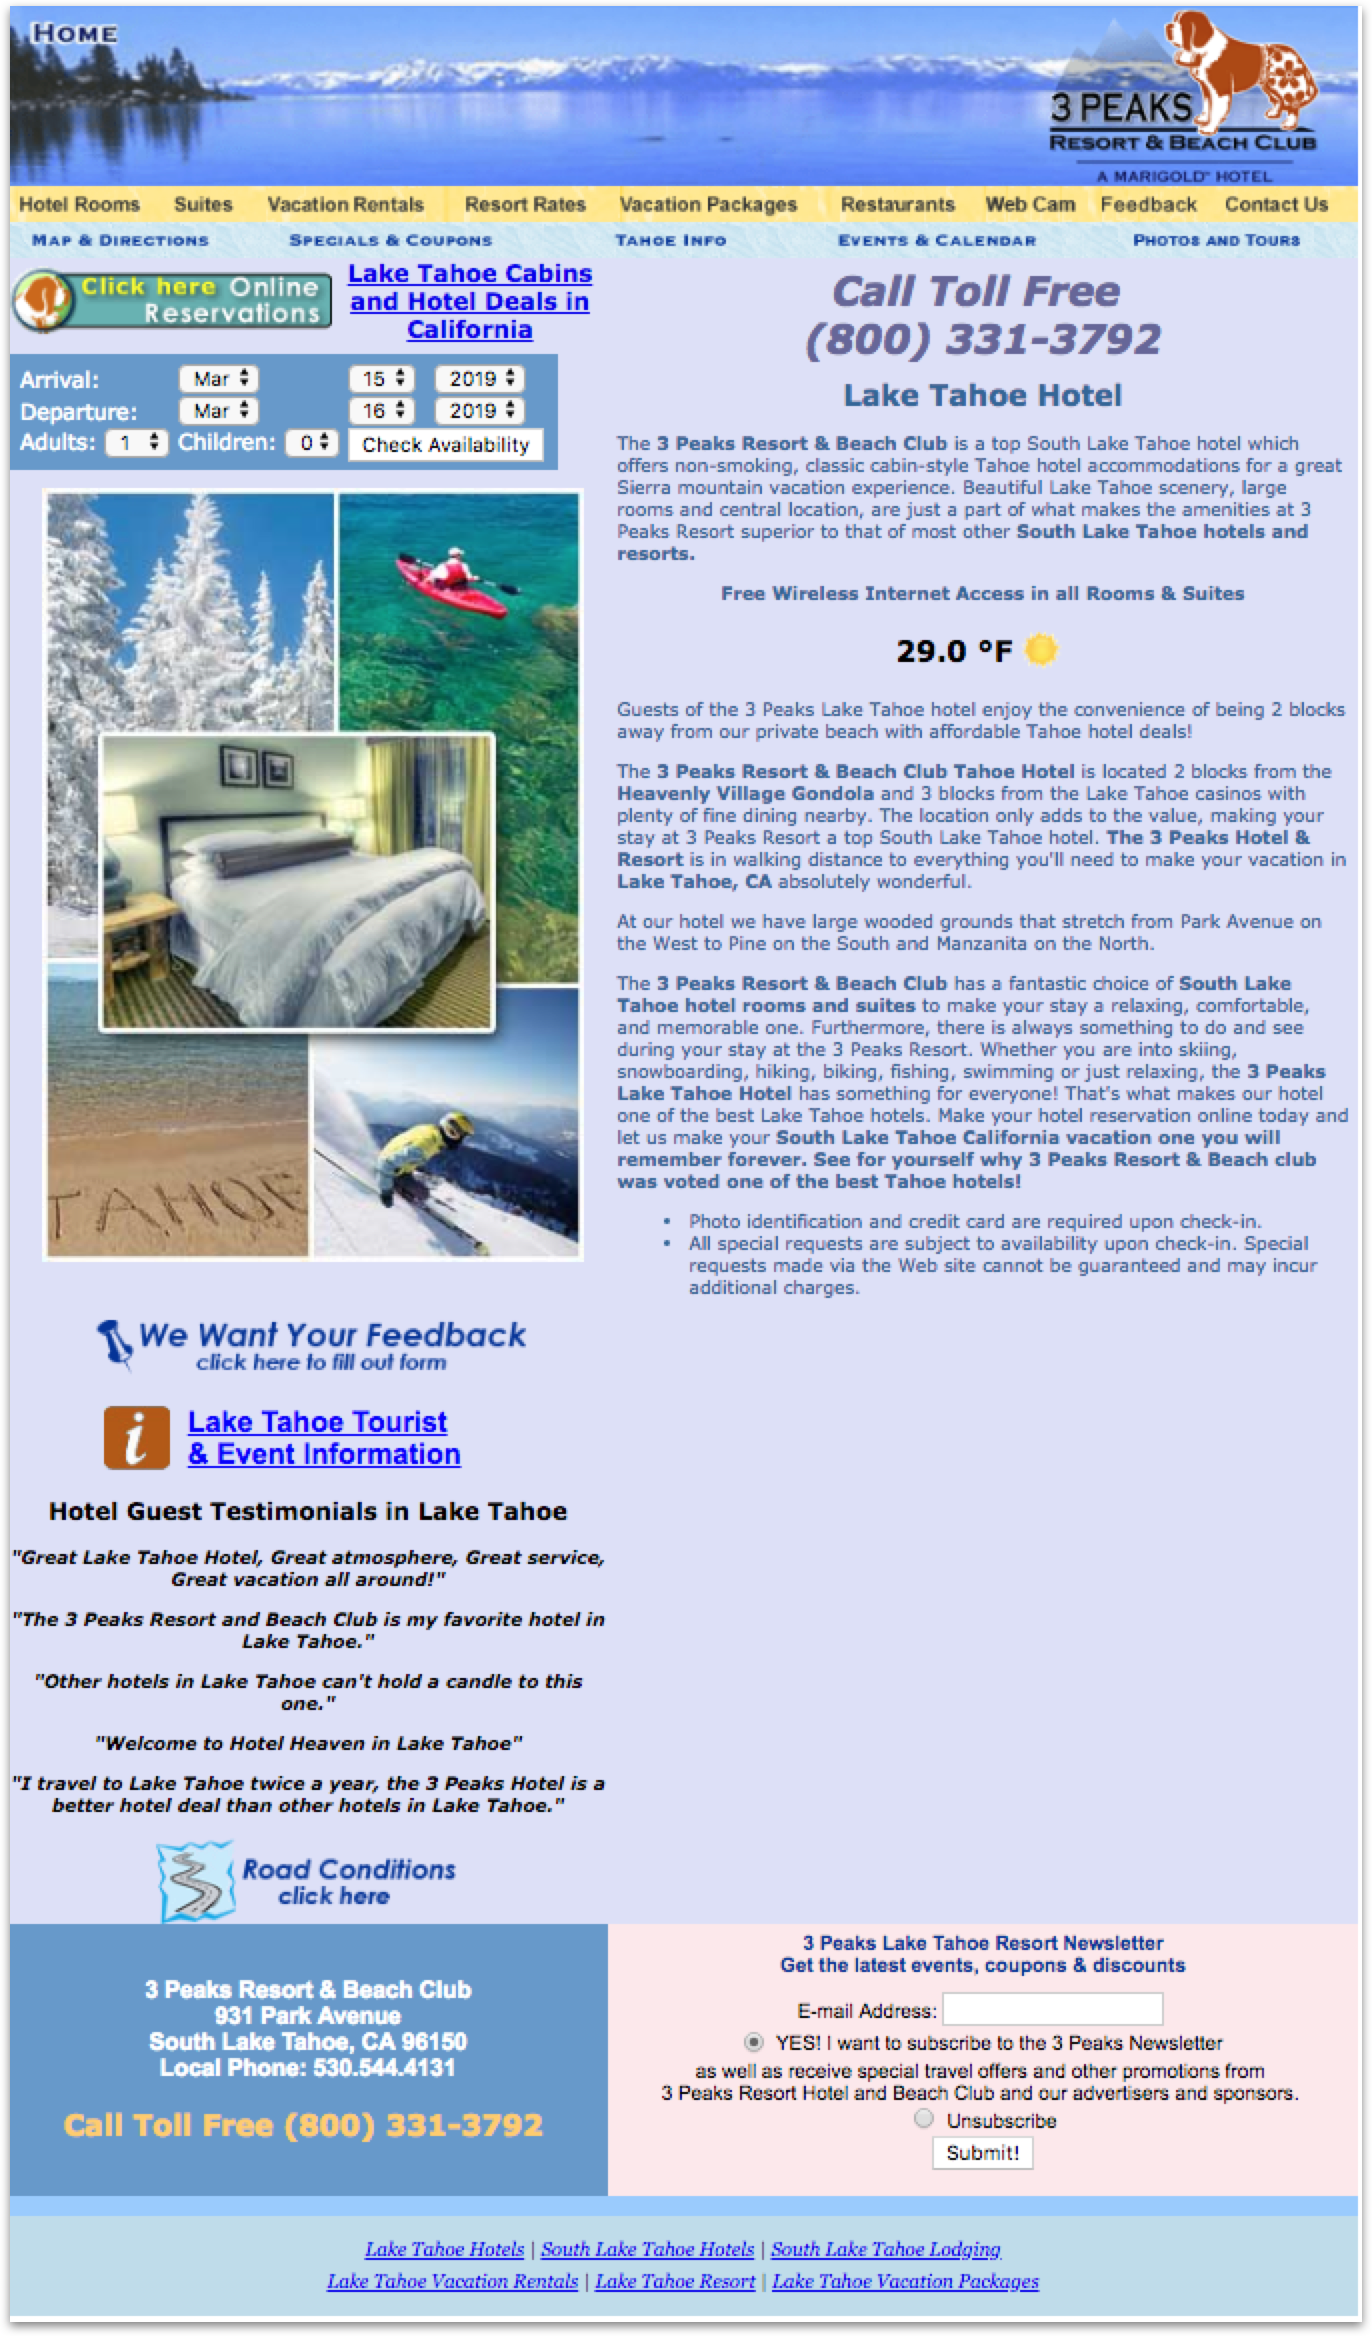 3Peaks Lake Tahoe Landing Page - The current website was outdated in design and functionality.